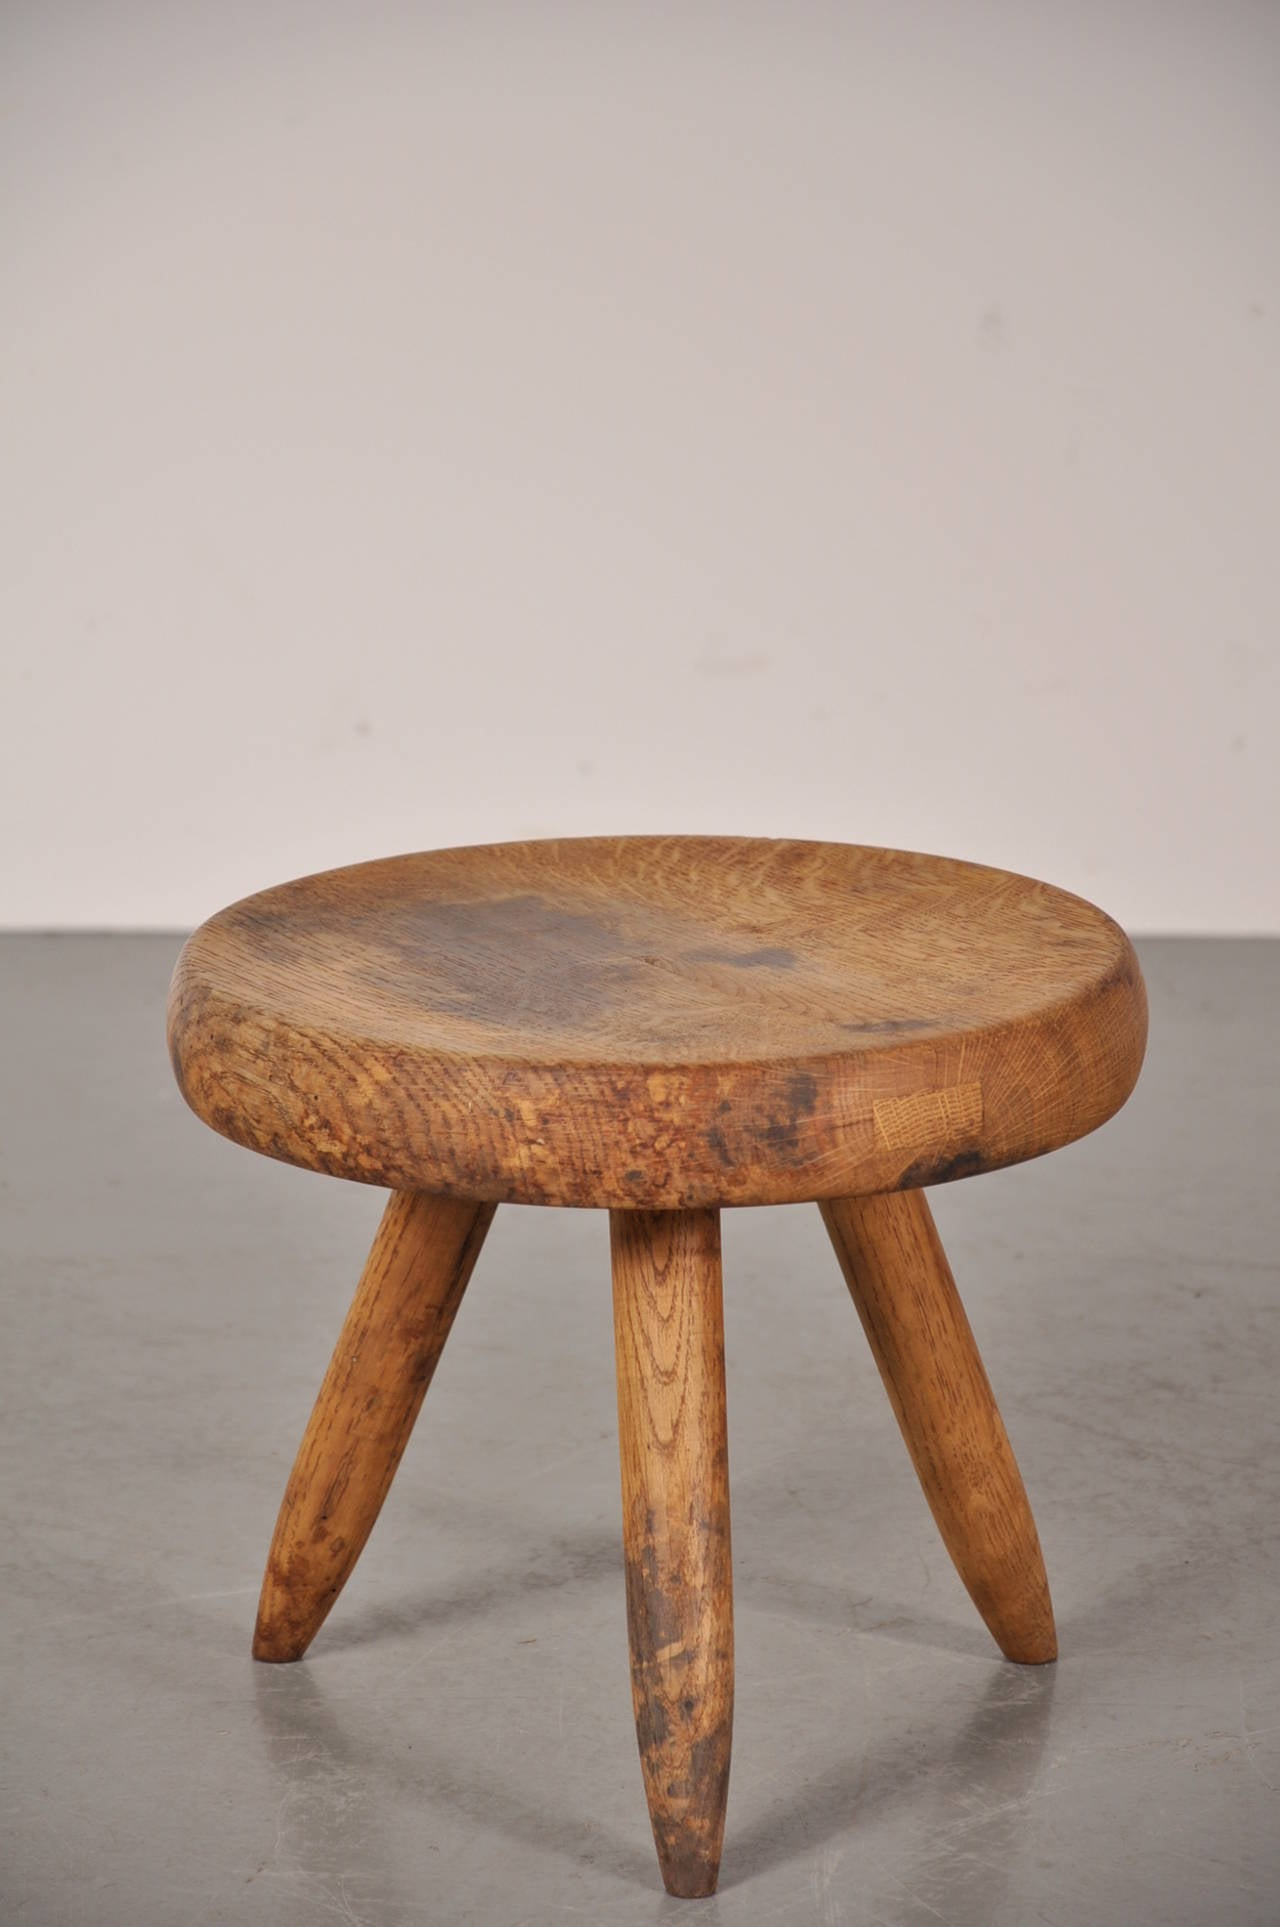 Stool By Charlotte Perriand Circa 1950 For Sale At 1stdibs